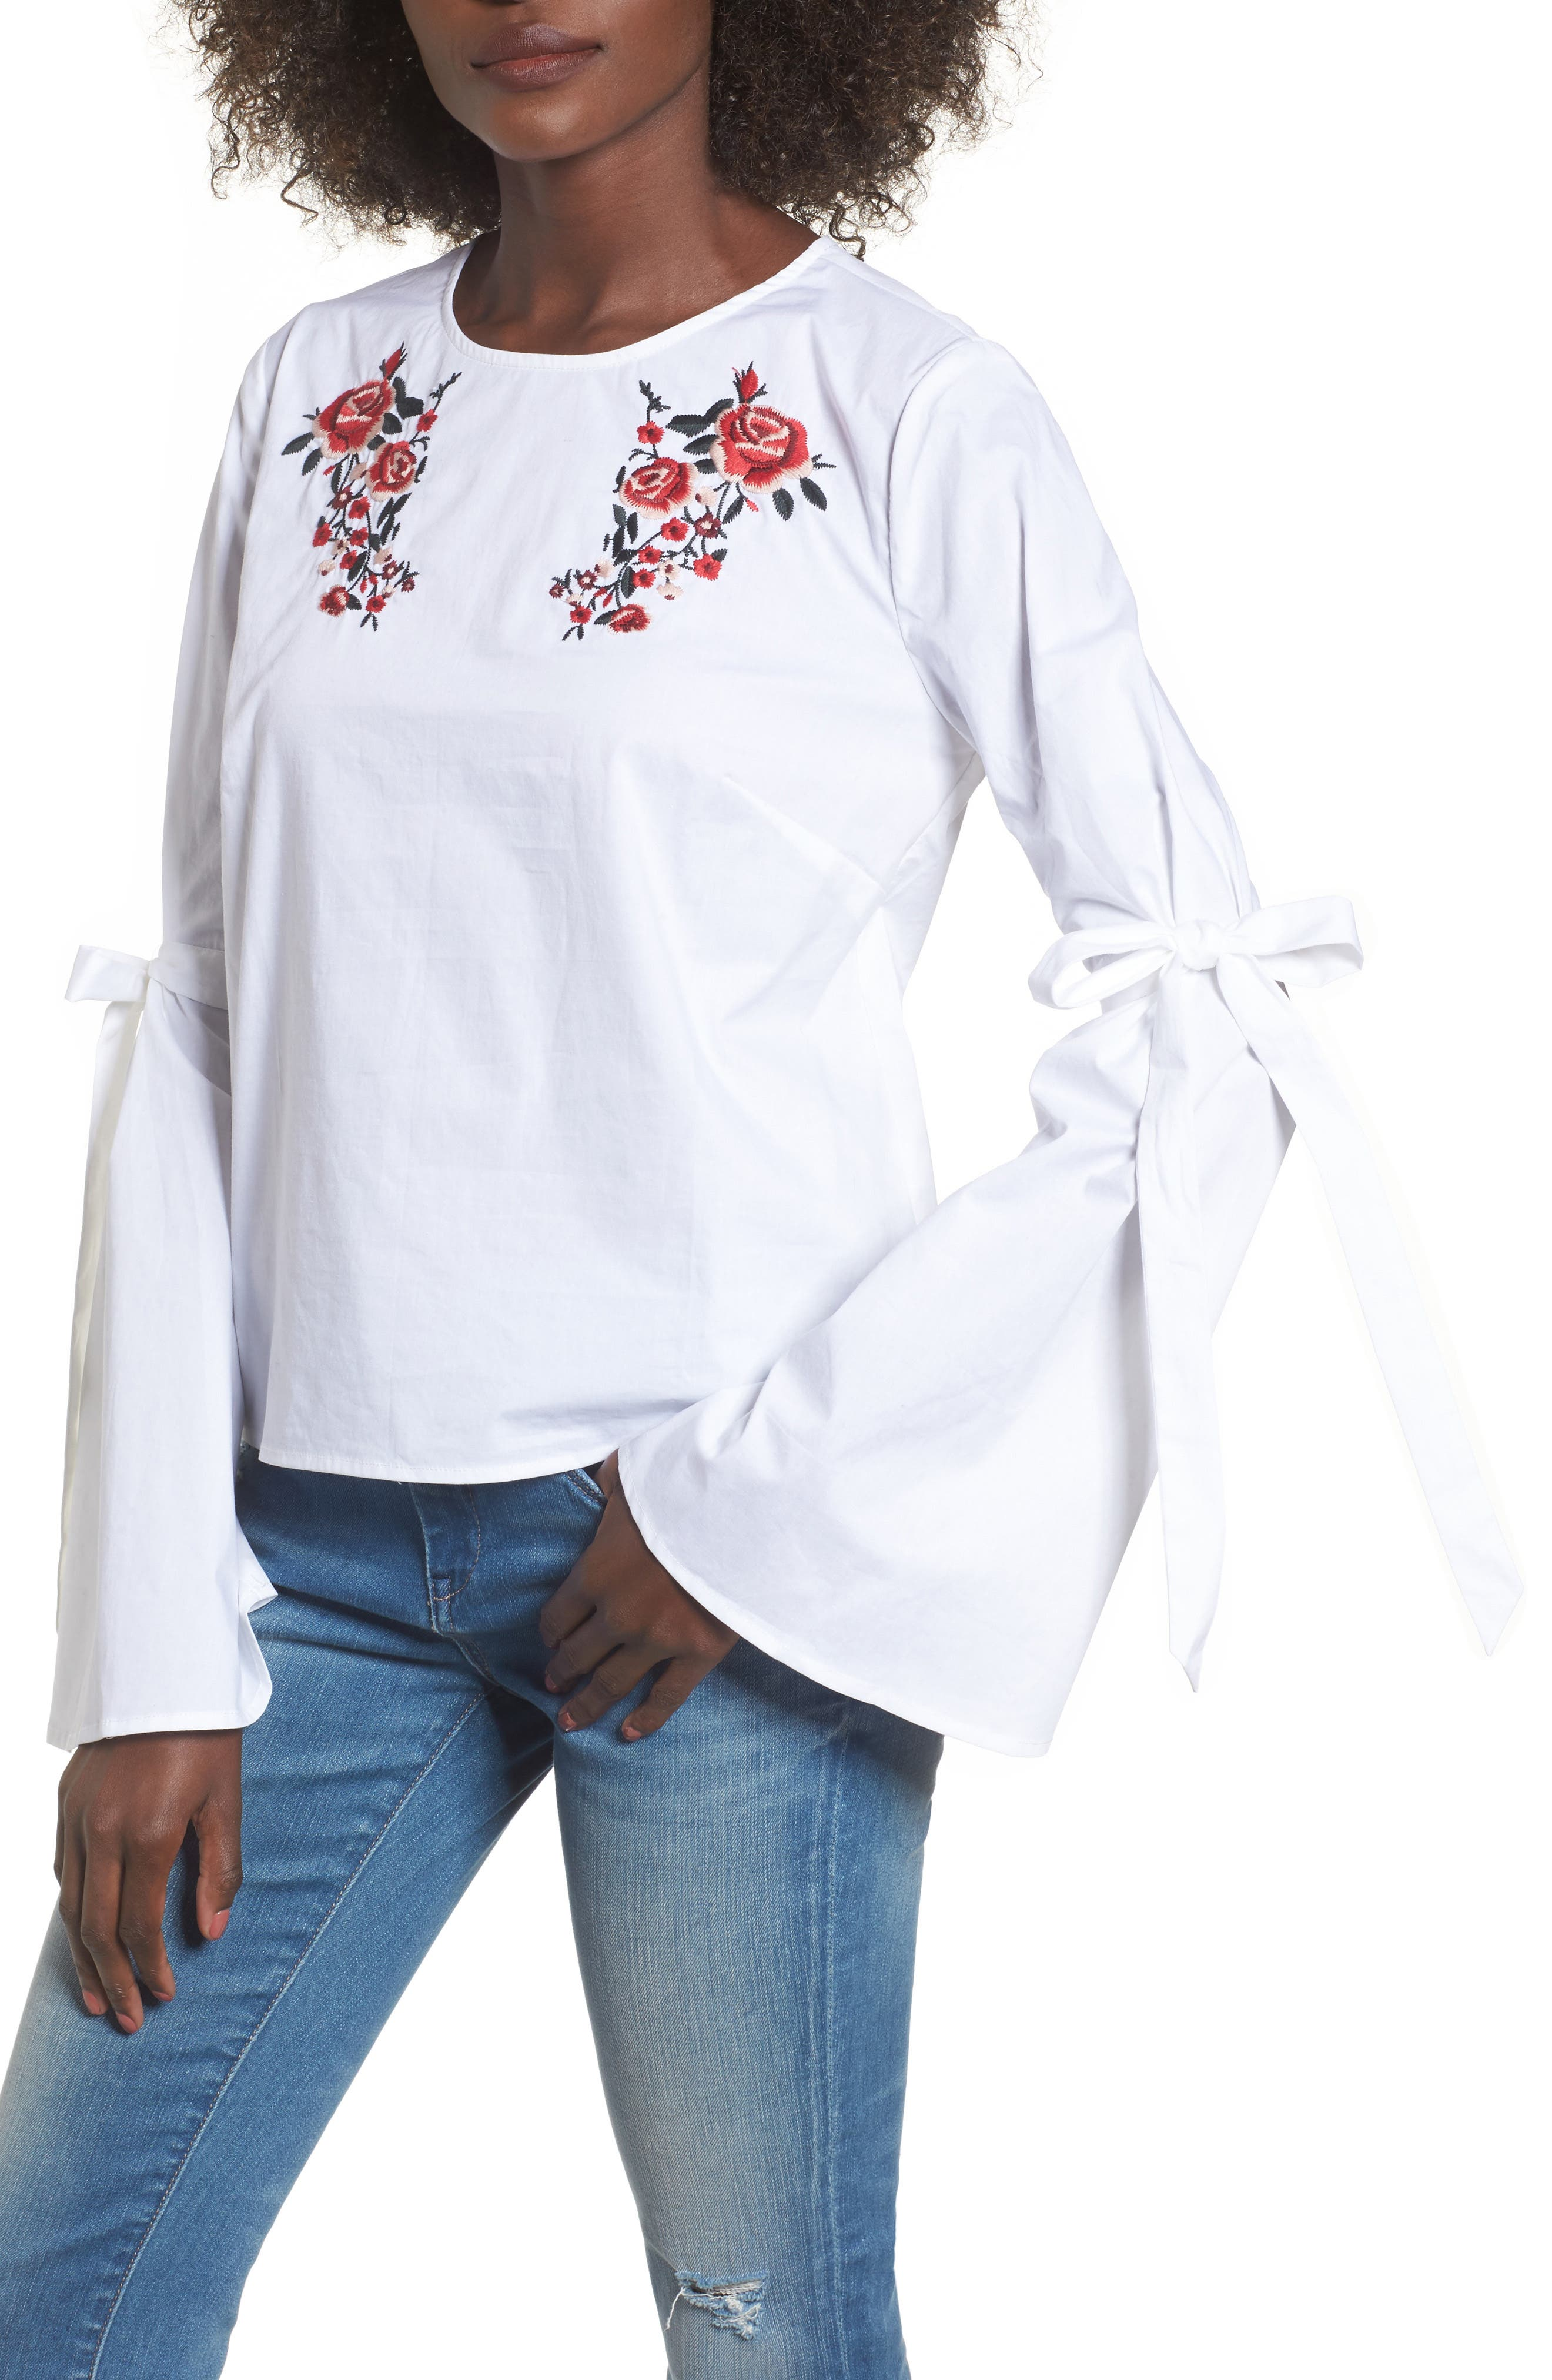 Main Image - Chloe & Katie Floral Embroidery Bell Sleeve Top